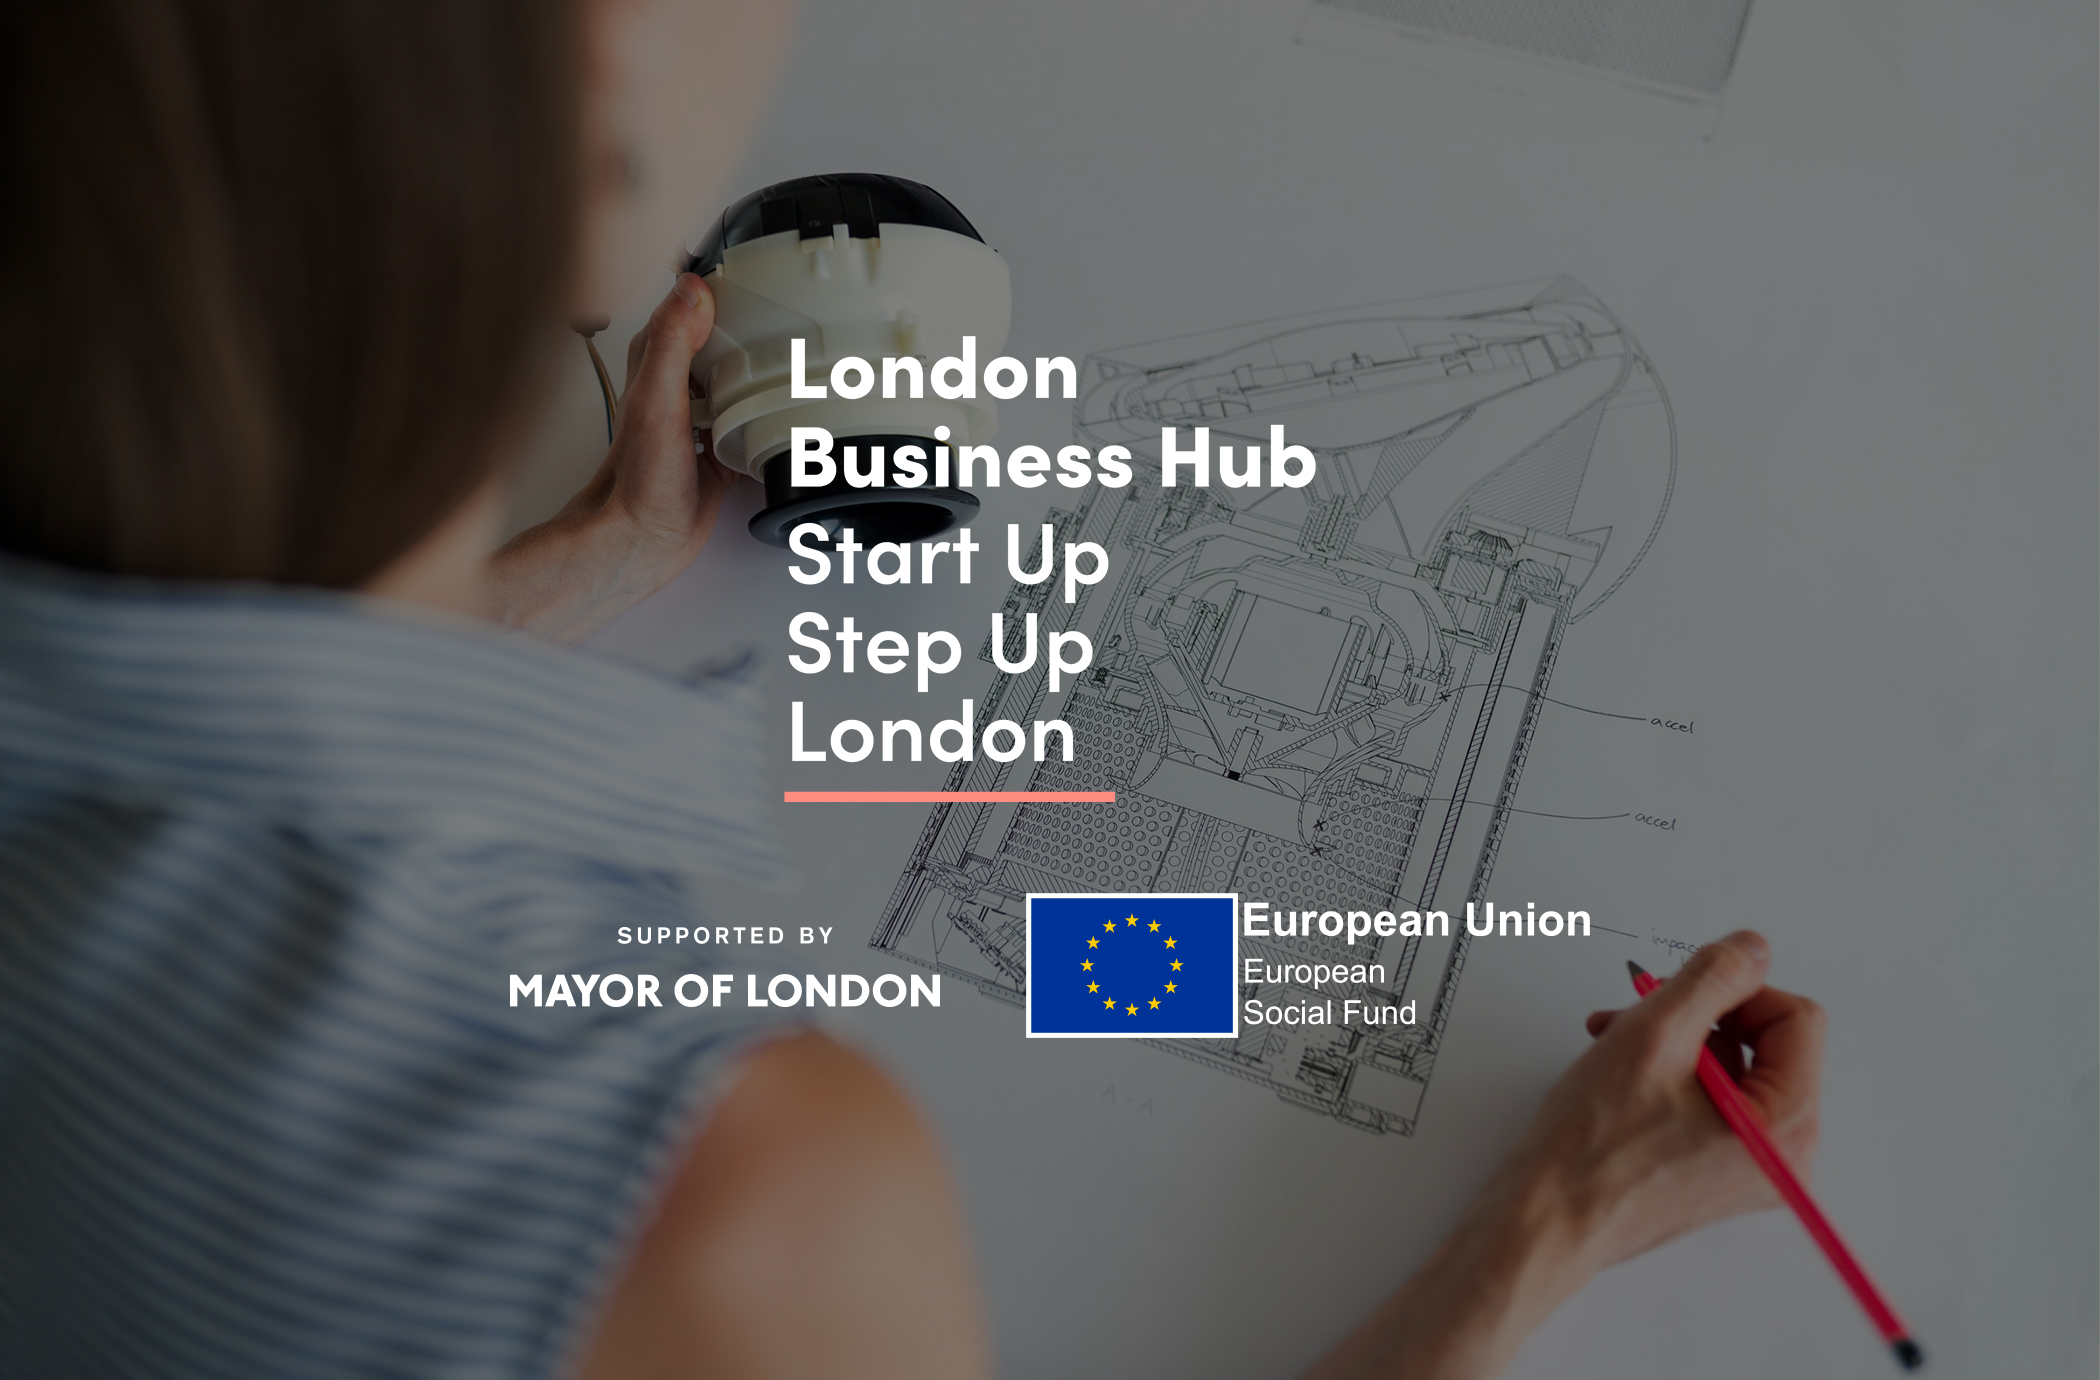 Start Up Step Up London